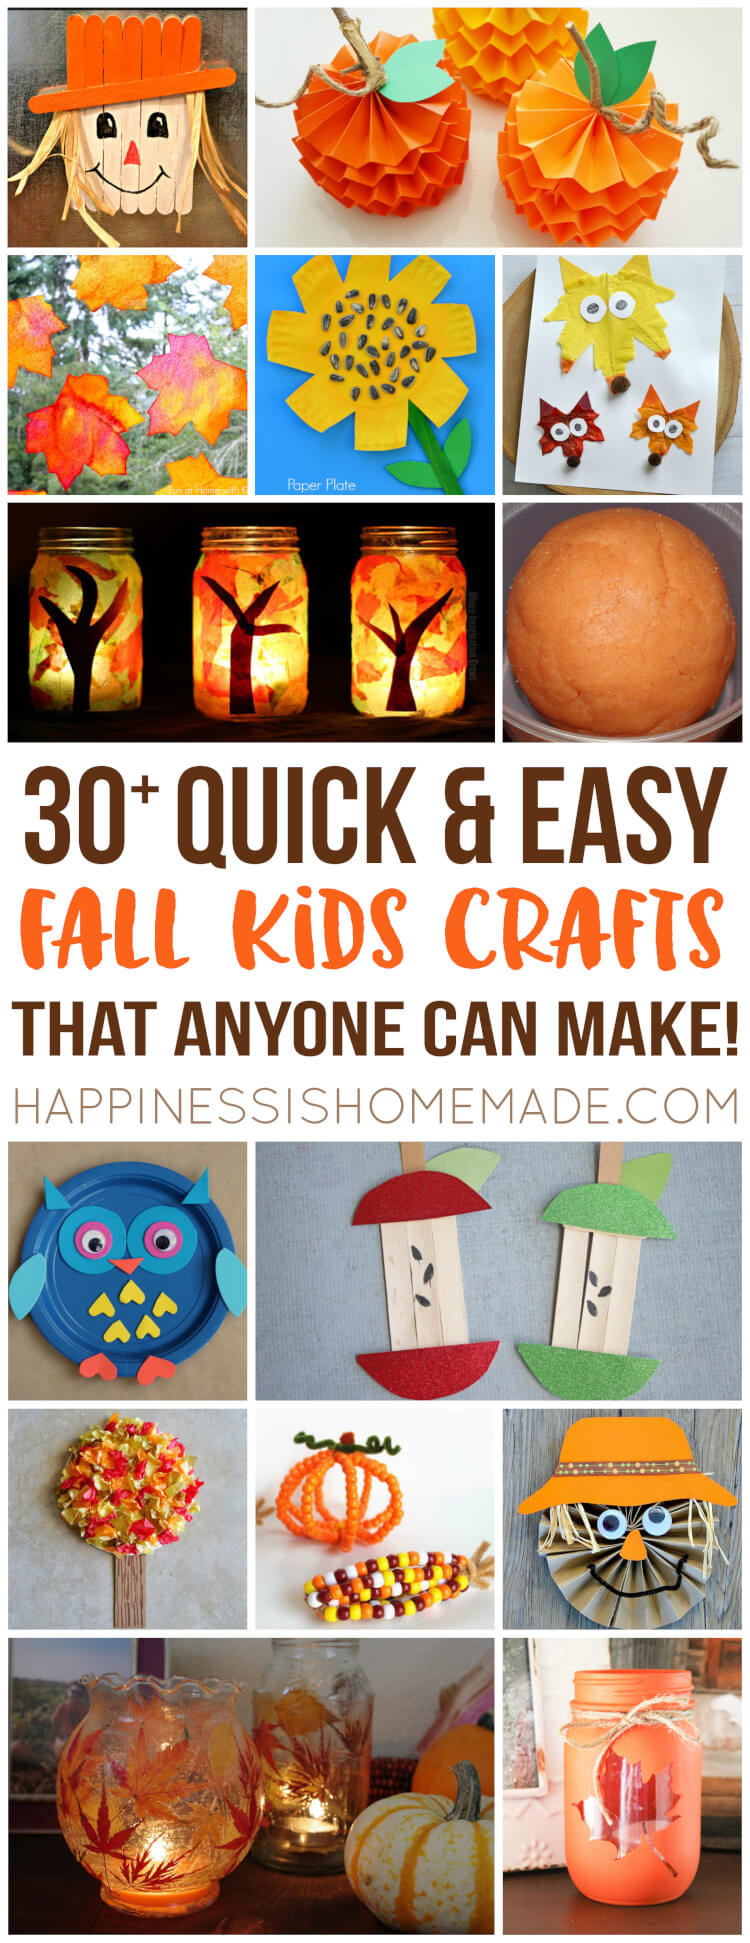 Best ideas about Fall Craft Ideas . Save or Pin Easy Fall Kids Crafts That Anyone Can Make Happiness is Now.